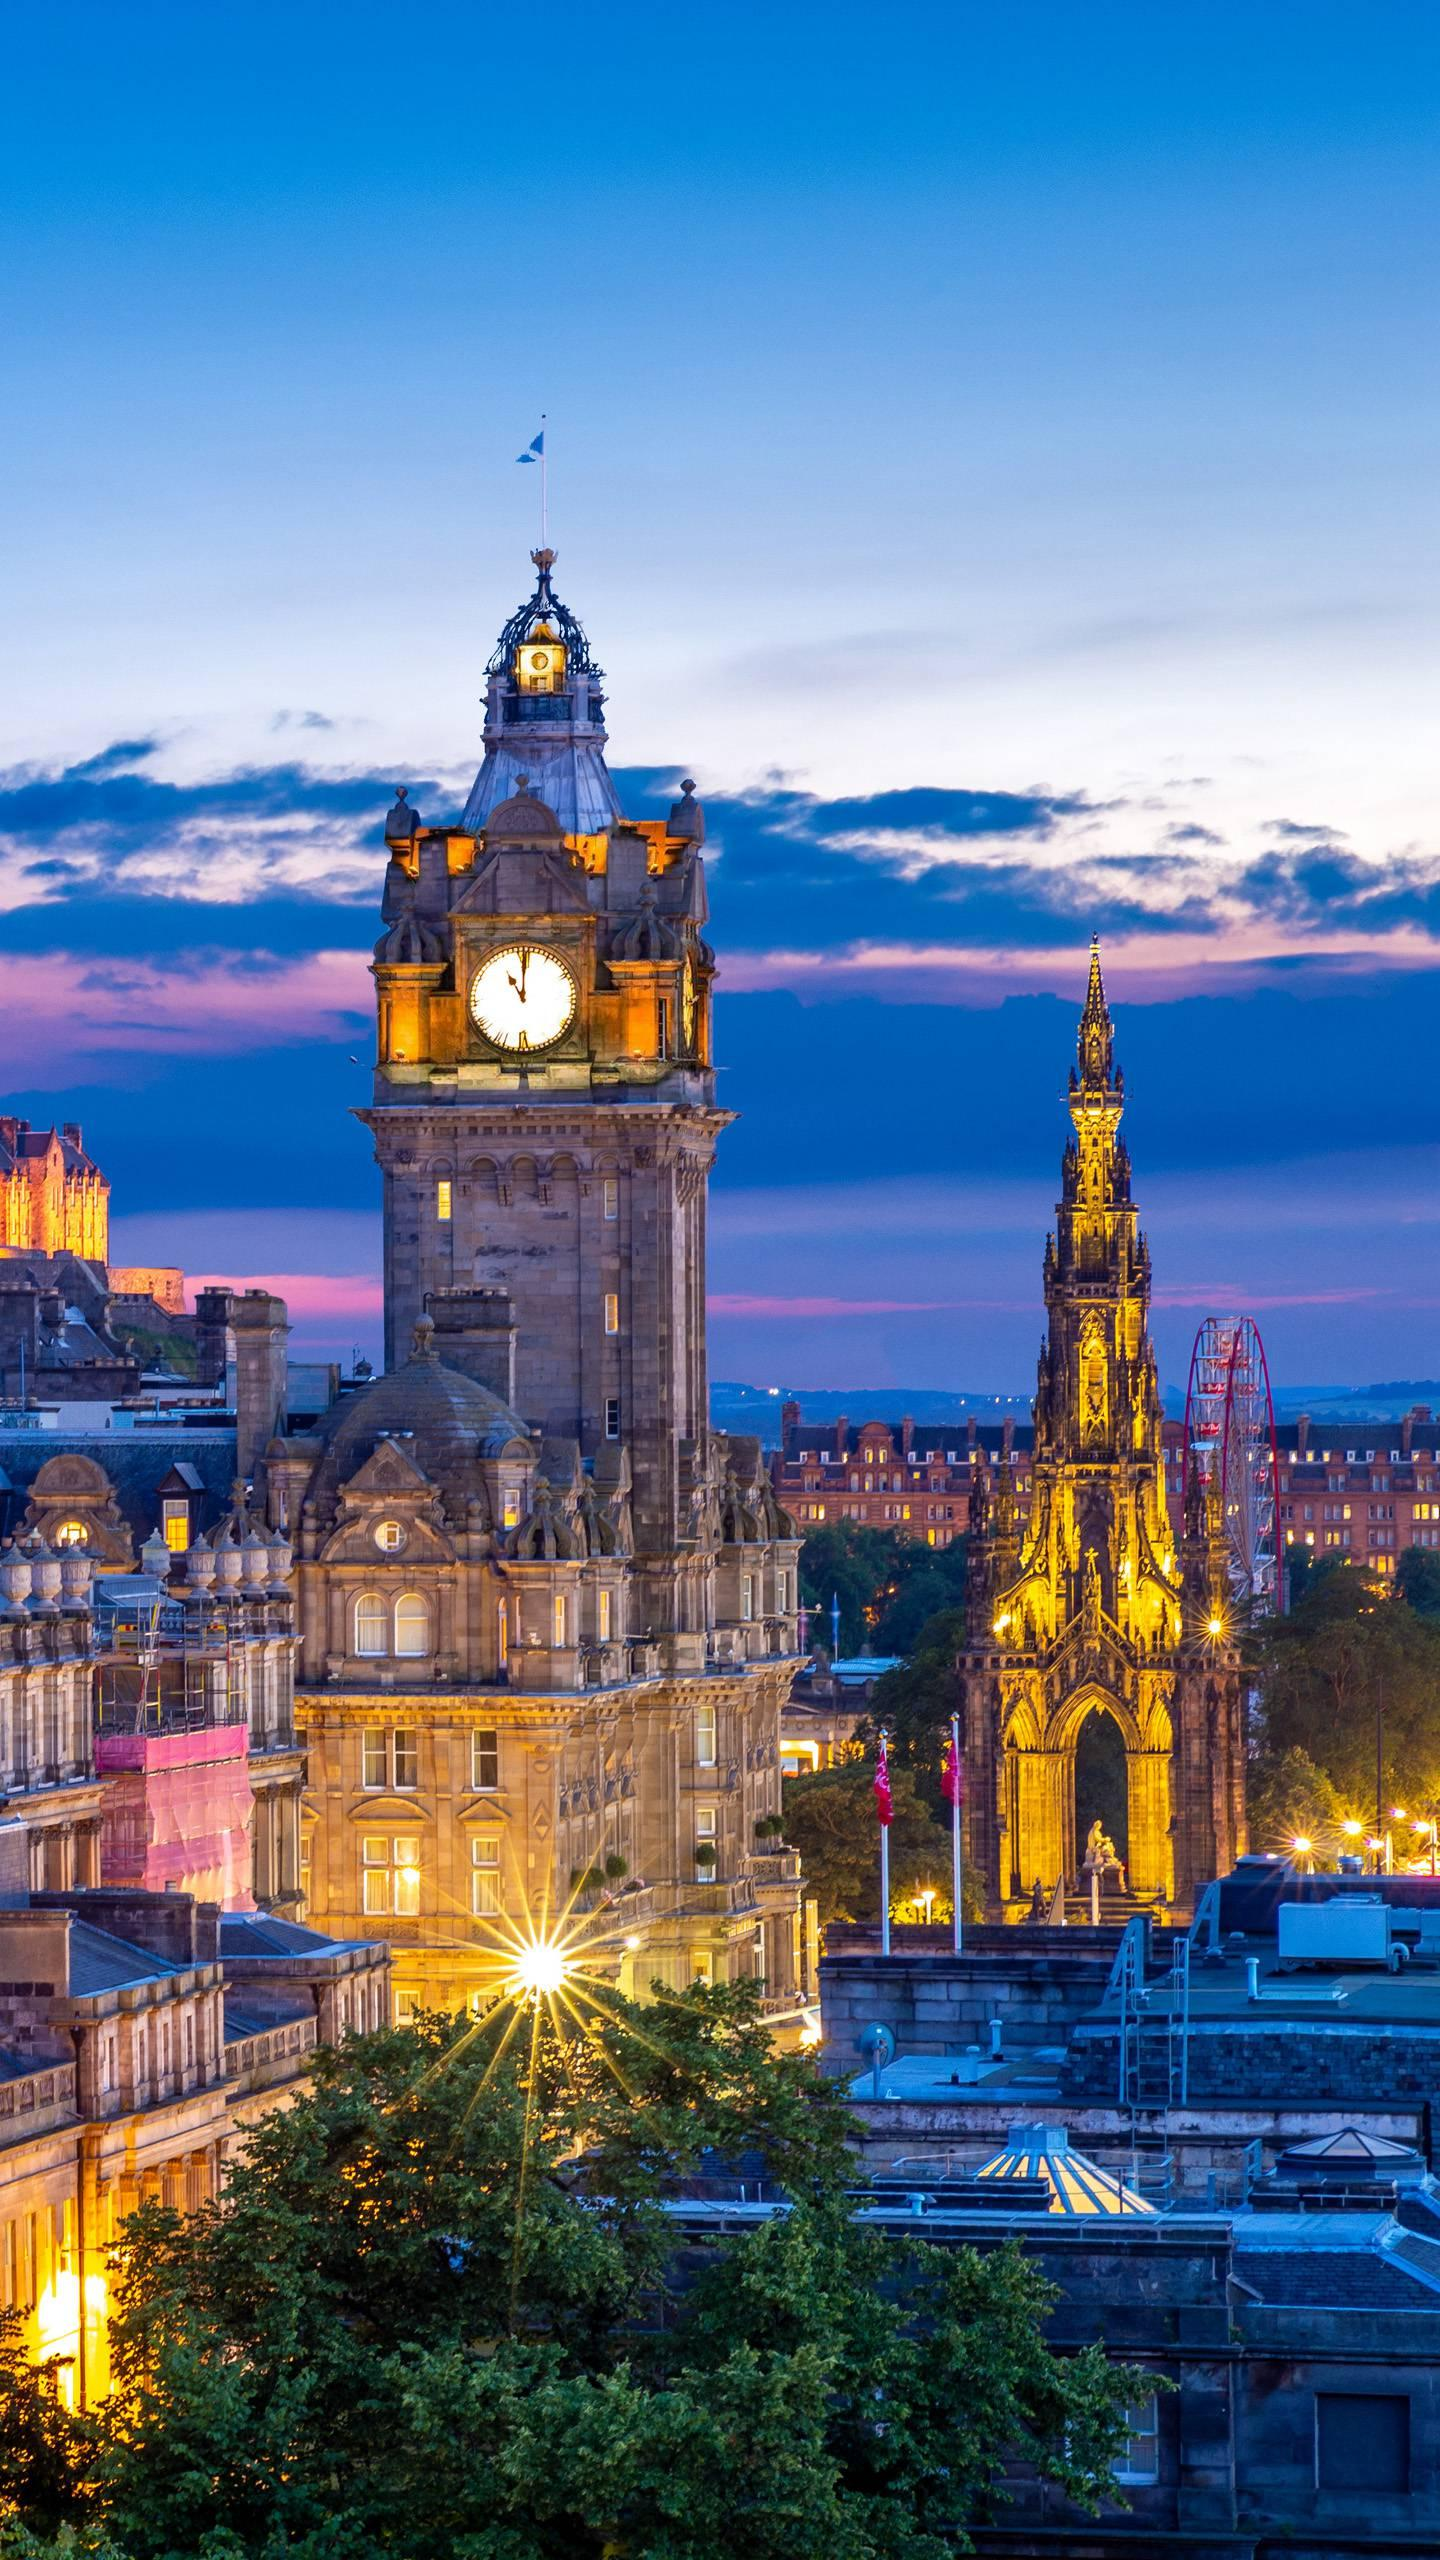 Britain - Edinburgh. The famous British cultural city and the capital of Scotland have a long history.